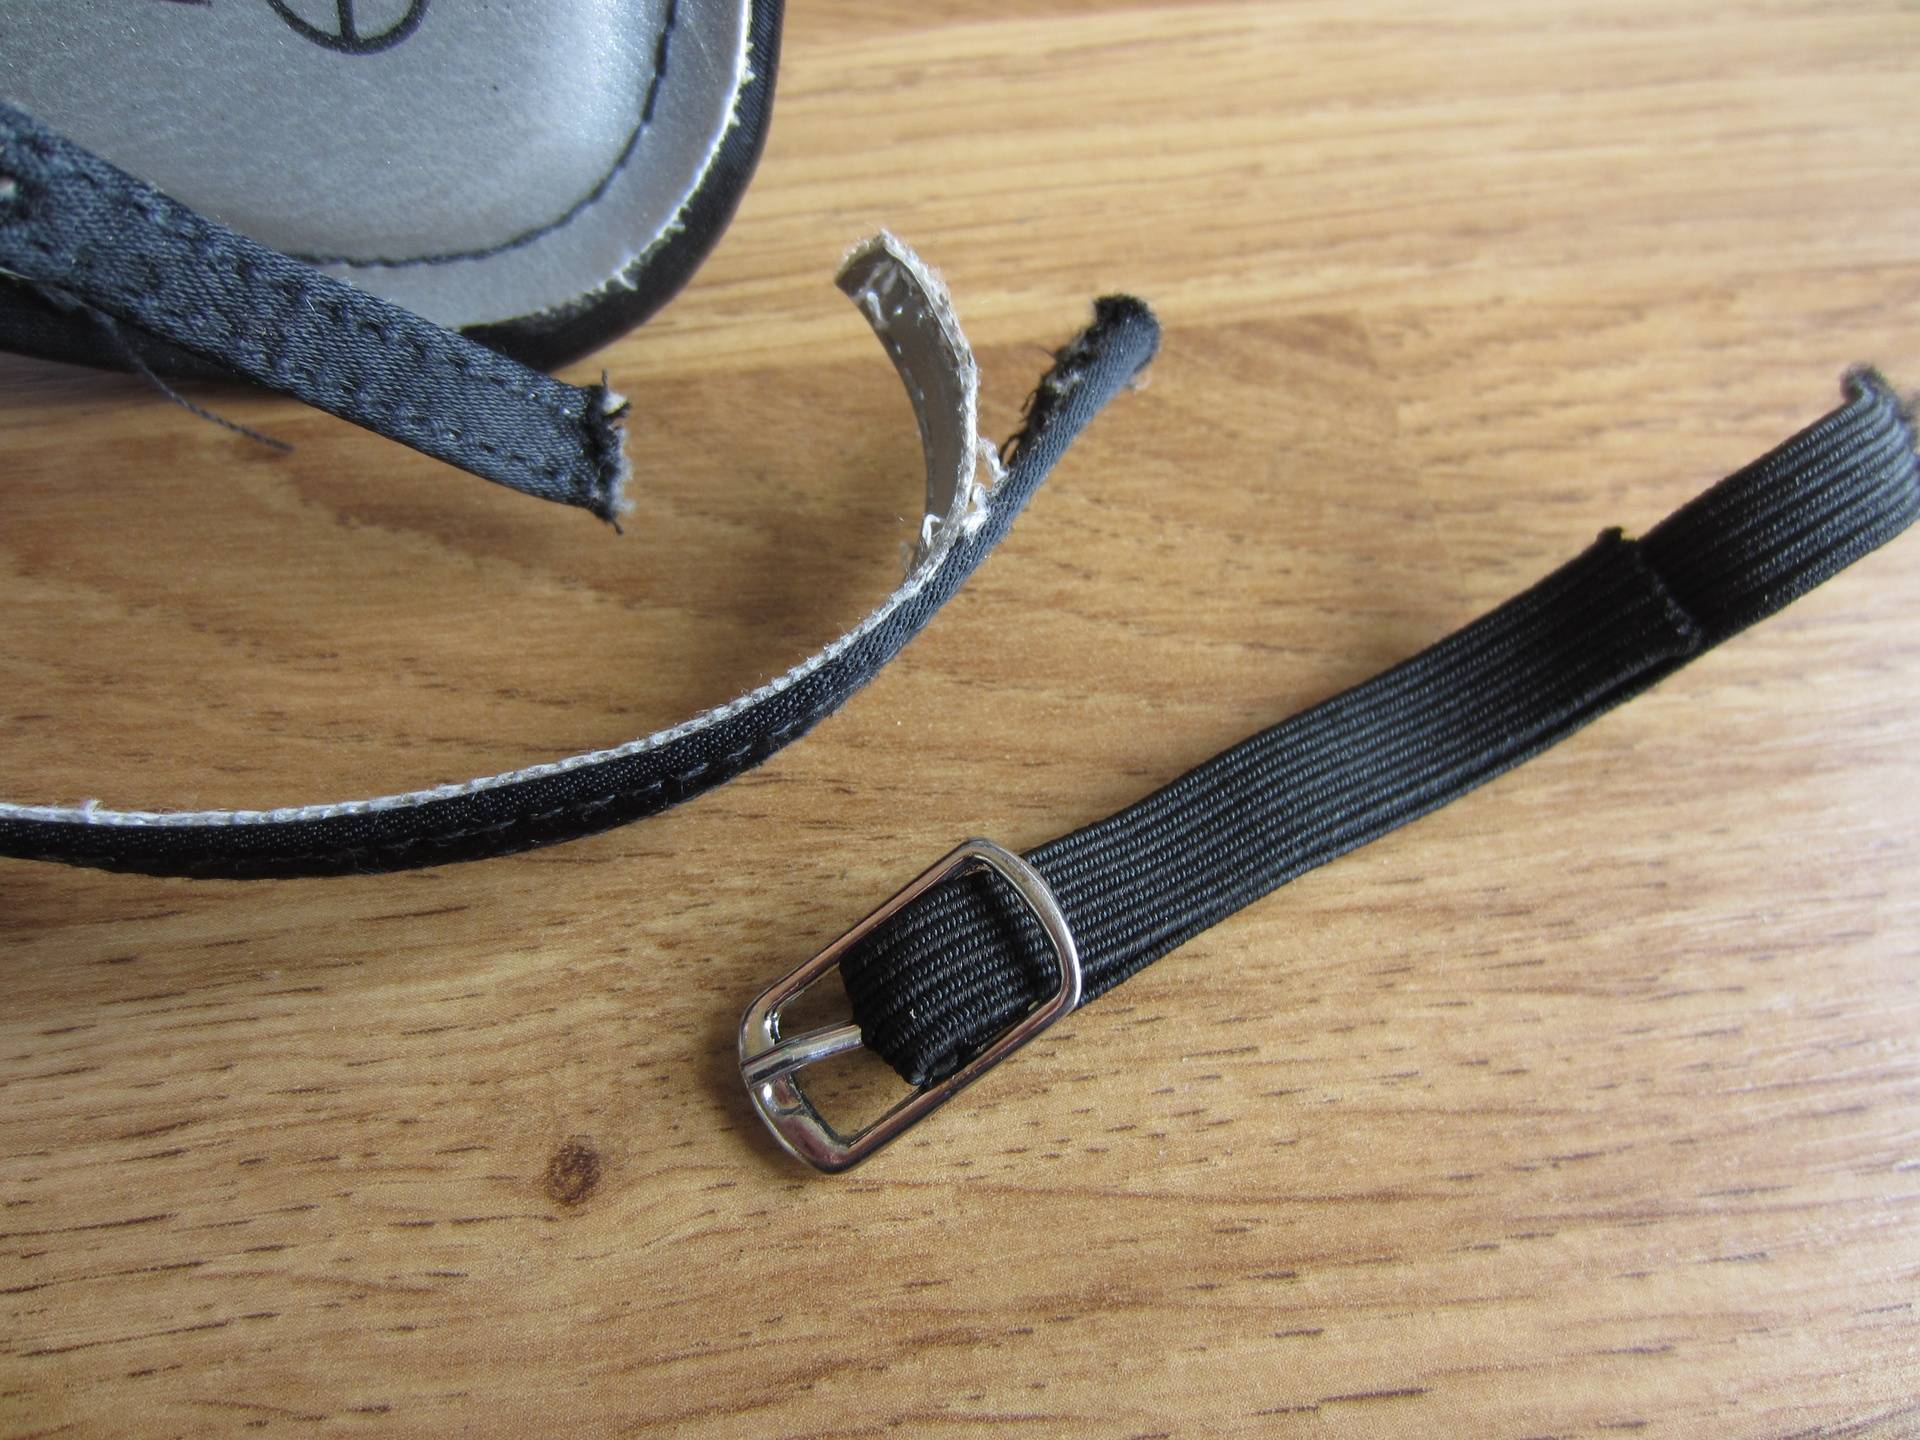 Fit new elastic to buckle.